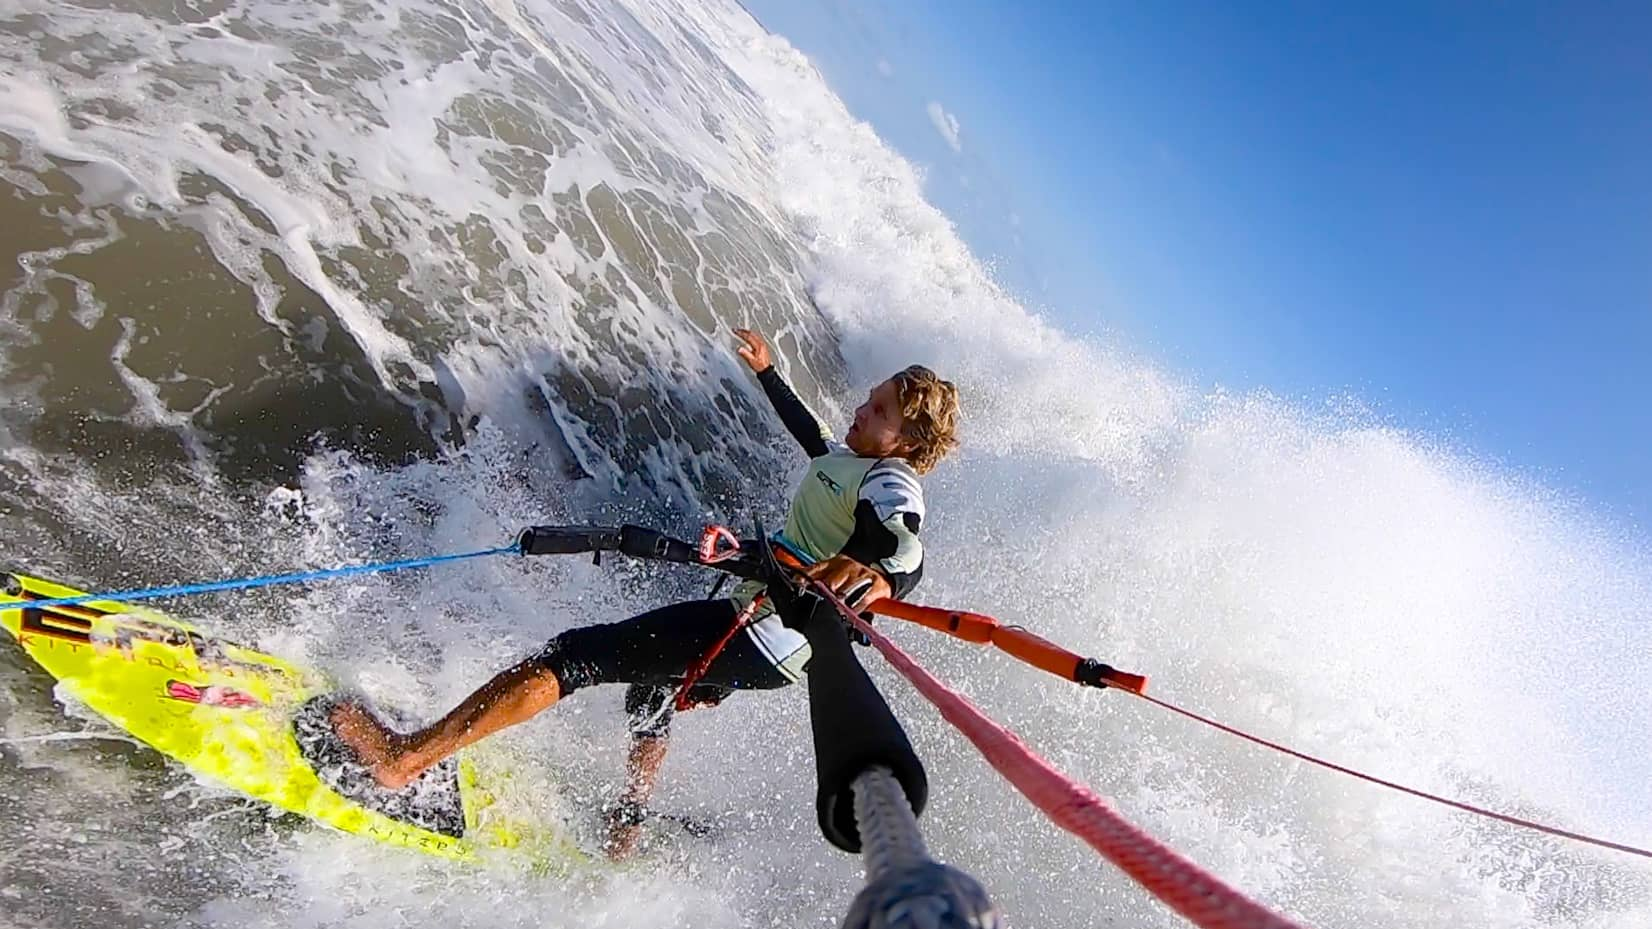 FEATHER kite amazing for surfing - with Epic Kites Kiteboarding